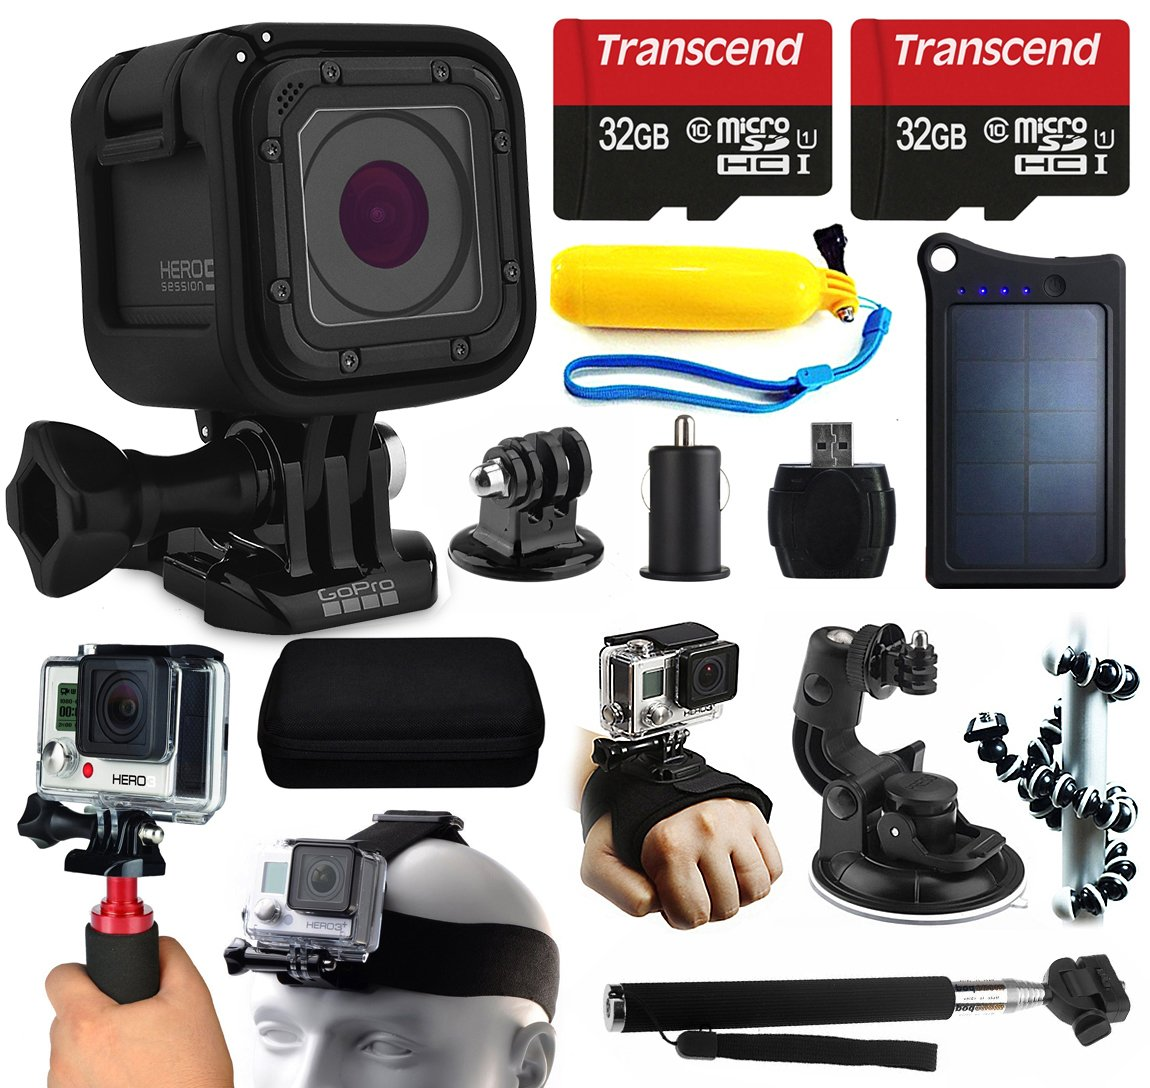 GoPro HERO5 Session HD Action Camera (CHDHS-501) + 64GB Essetial Accessories Bundle includes Solar Charger + Stabilizer + Head Strap + Car Mount + Selfie Stick + Travel Case + Car Charger + More! by 47th Street Photo